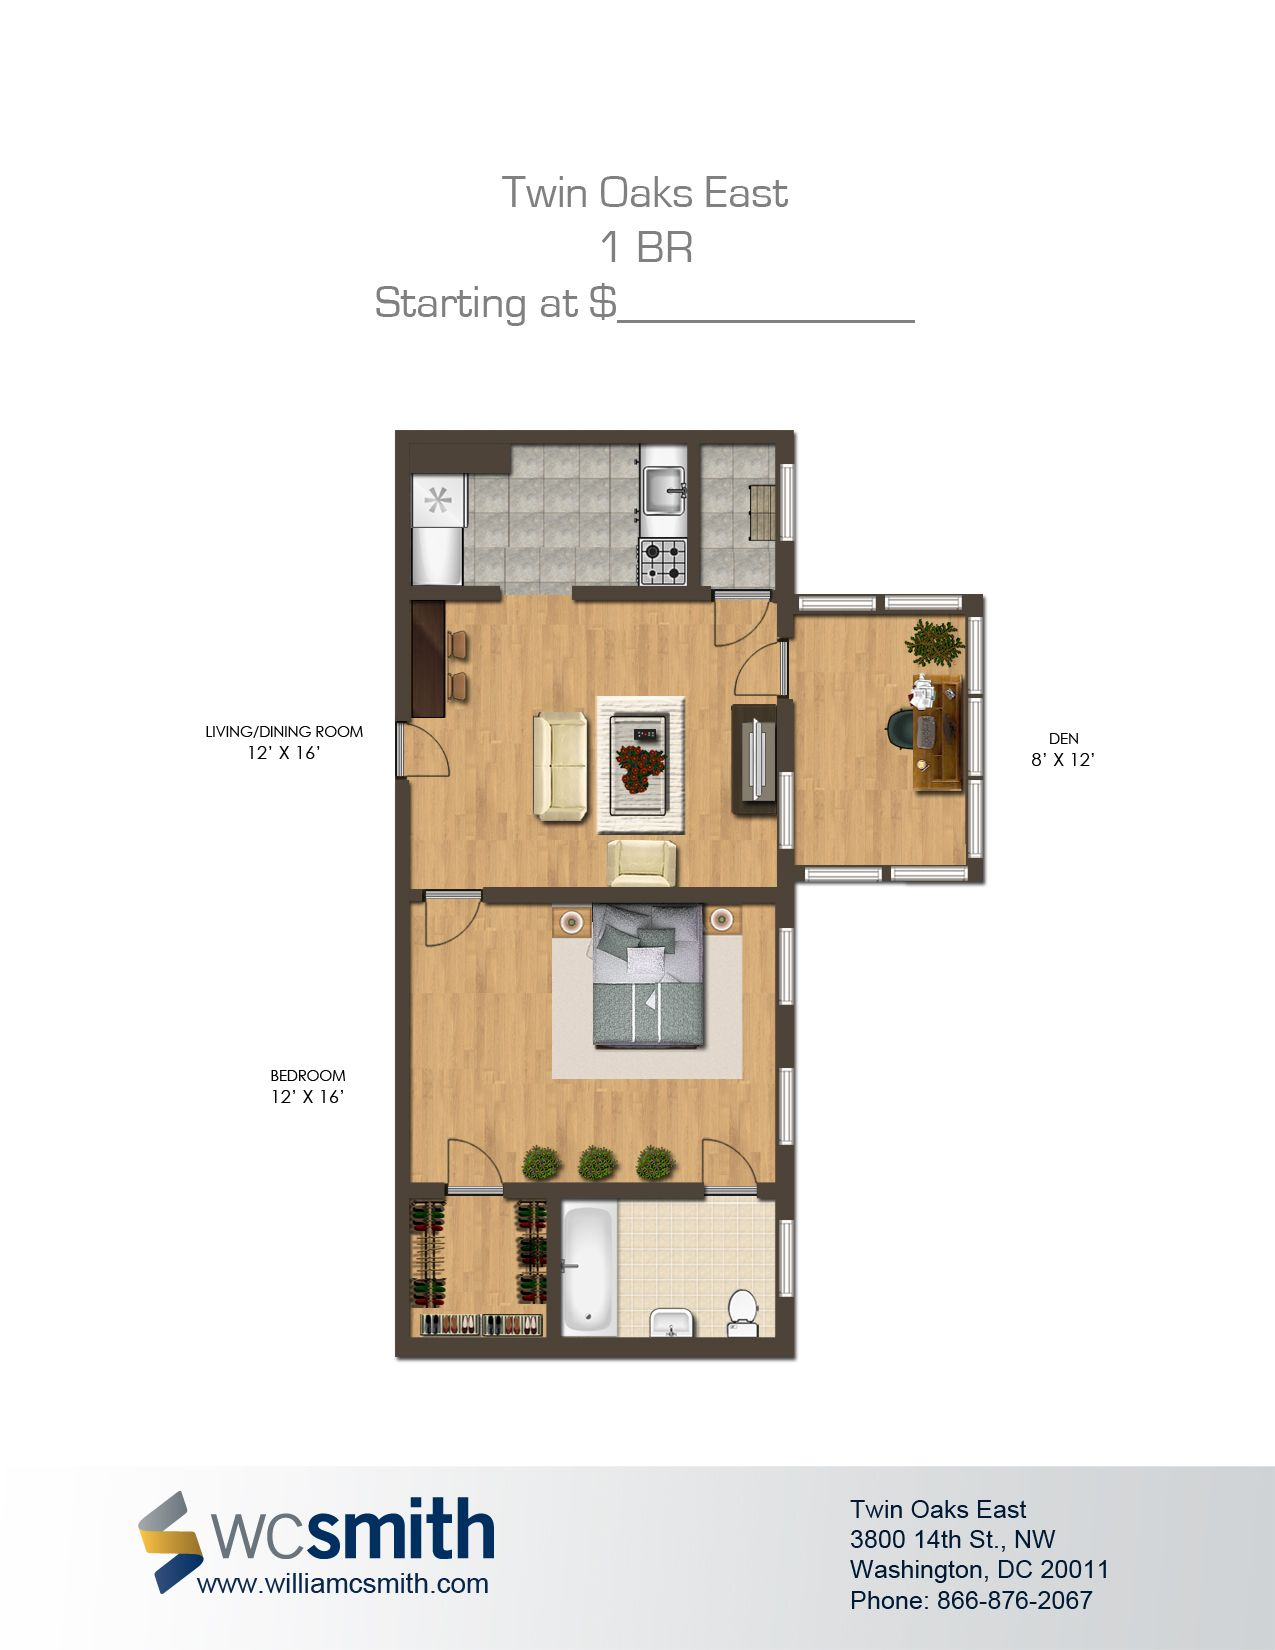 One Bedroom Floor Plan | Twin Oaks In Northwest Washington DC | WC Smith # Apartments | Columbia Heights #Rentals